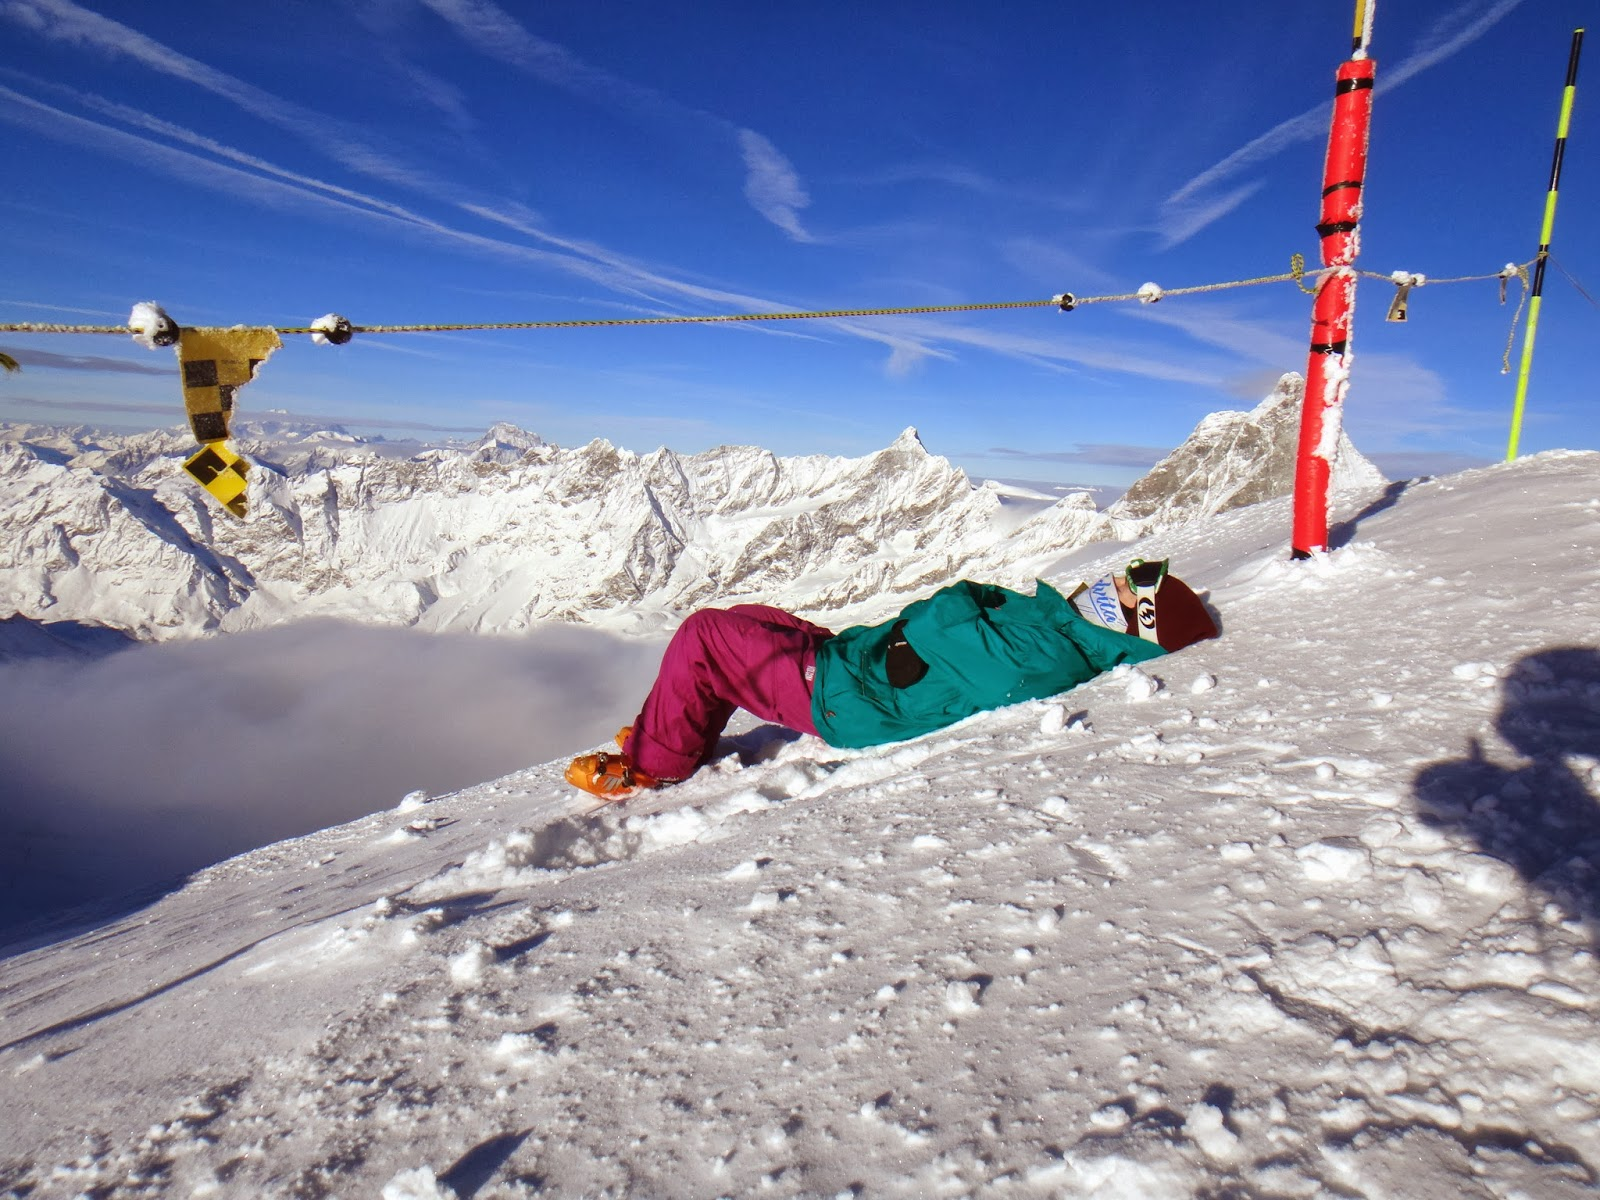 Lifestyle, Skiing, Switzerland, Zermatt, Holiday, Winter, Sport, Ski, Ski Holiday, Ski Resort, Travel, Snow, Travelling, Pictures, Zermatt Switzerland, Skier, Snowboarding, Ski Zermatt, Ski Zermatt Switzerland, Matterhorn, Italy, Italia, Klein Matterhorn